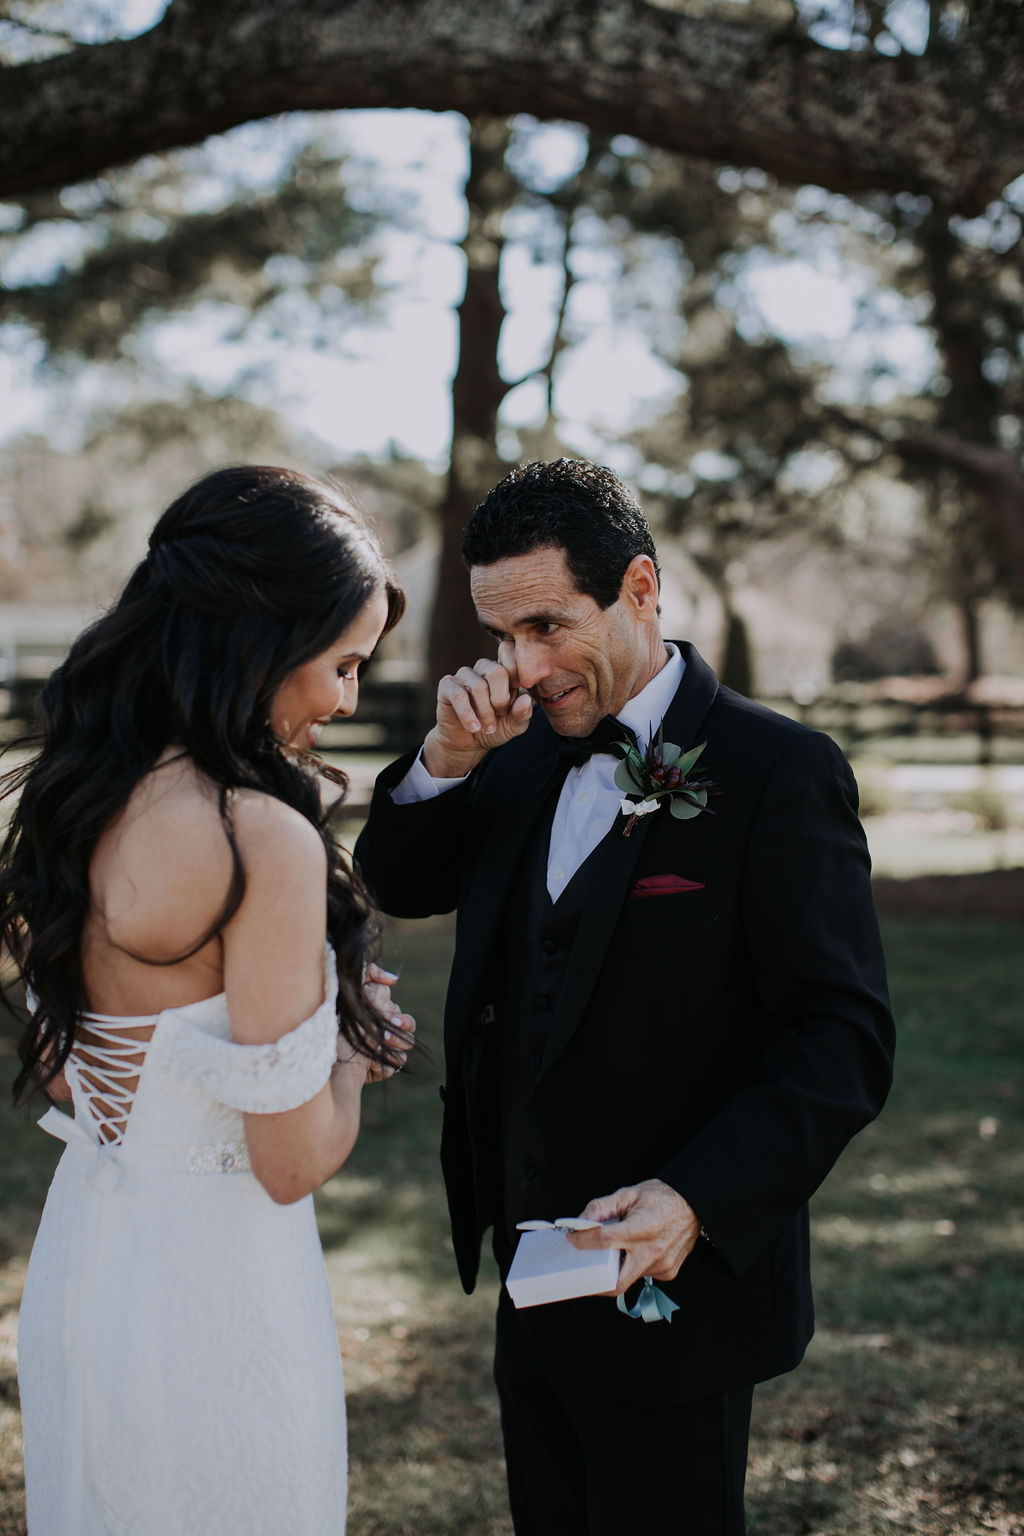 CaseyandChadWeddingORIGINALS_20190126_DNP_2174.jpg